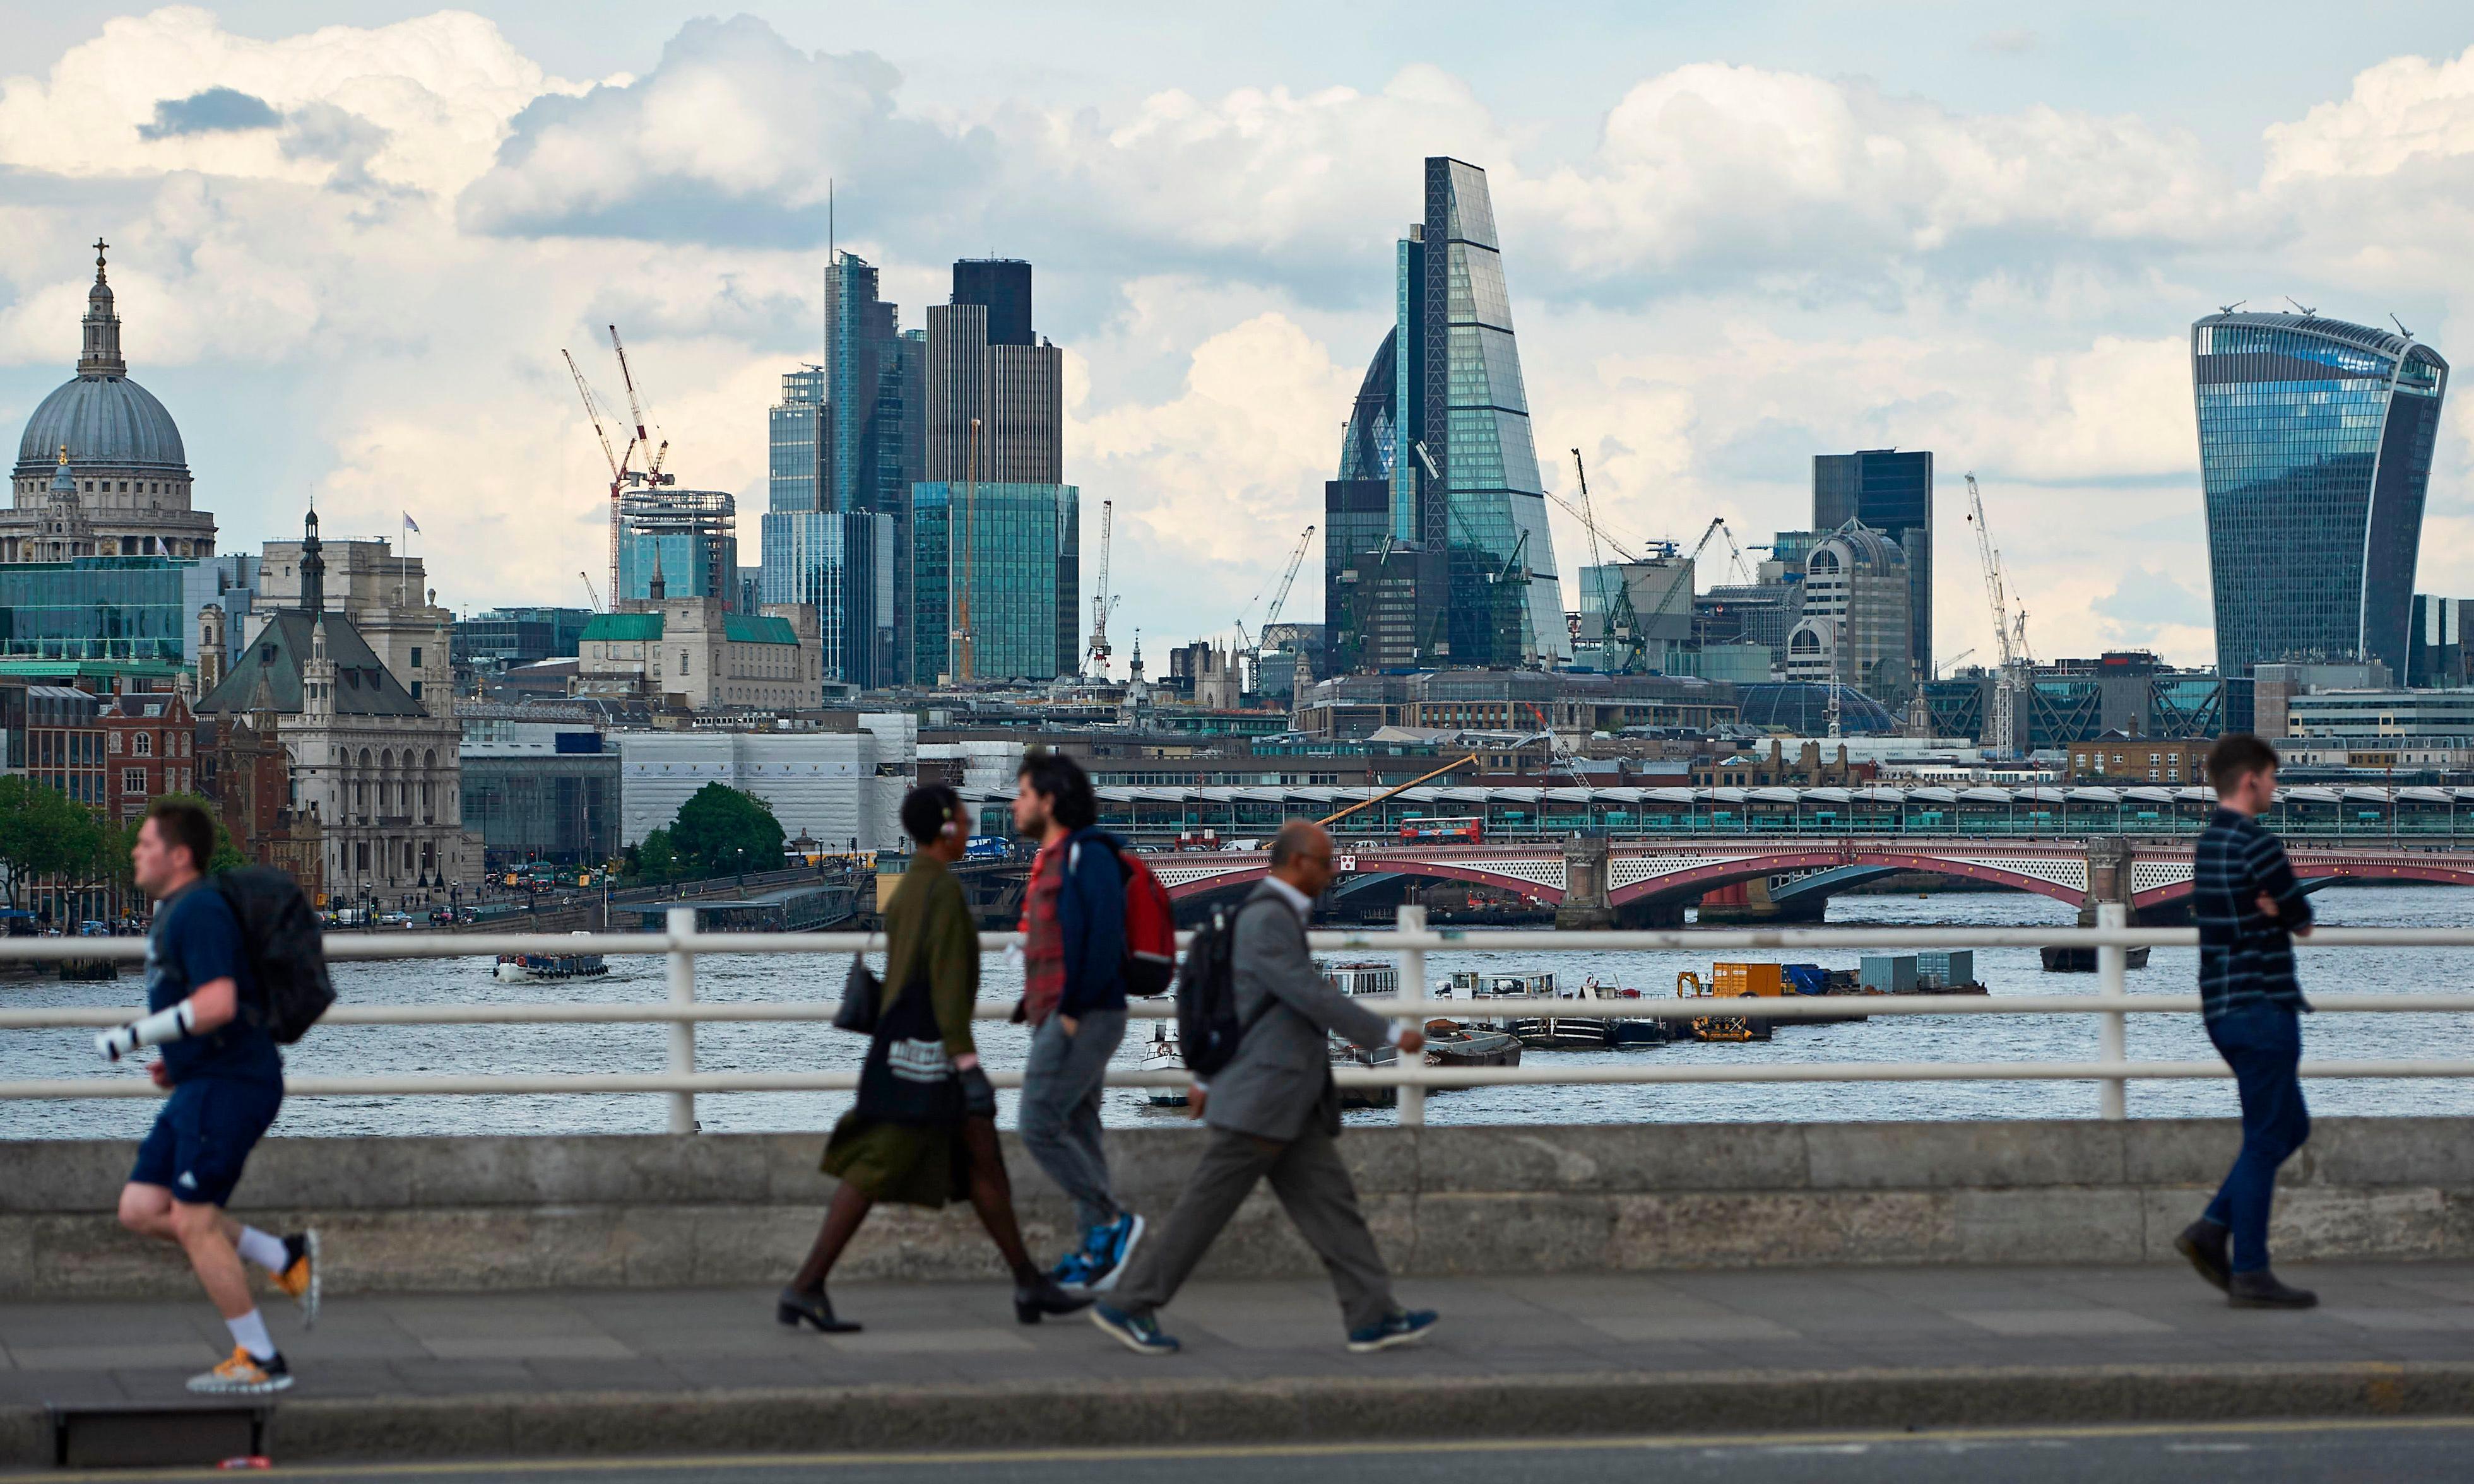 City firms must do more to tackle sexual harassment, says FCA executive